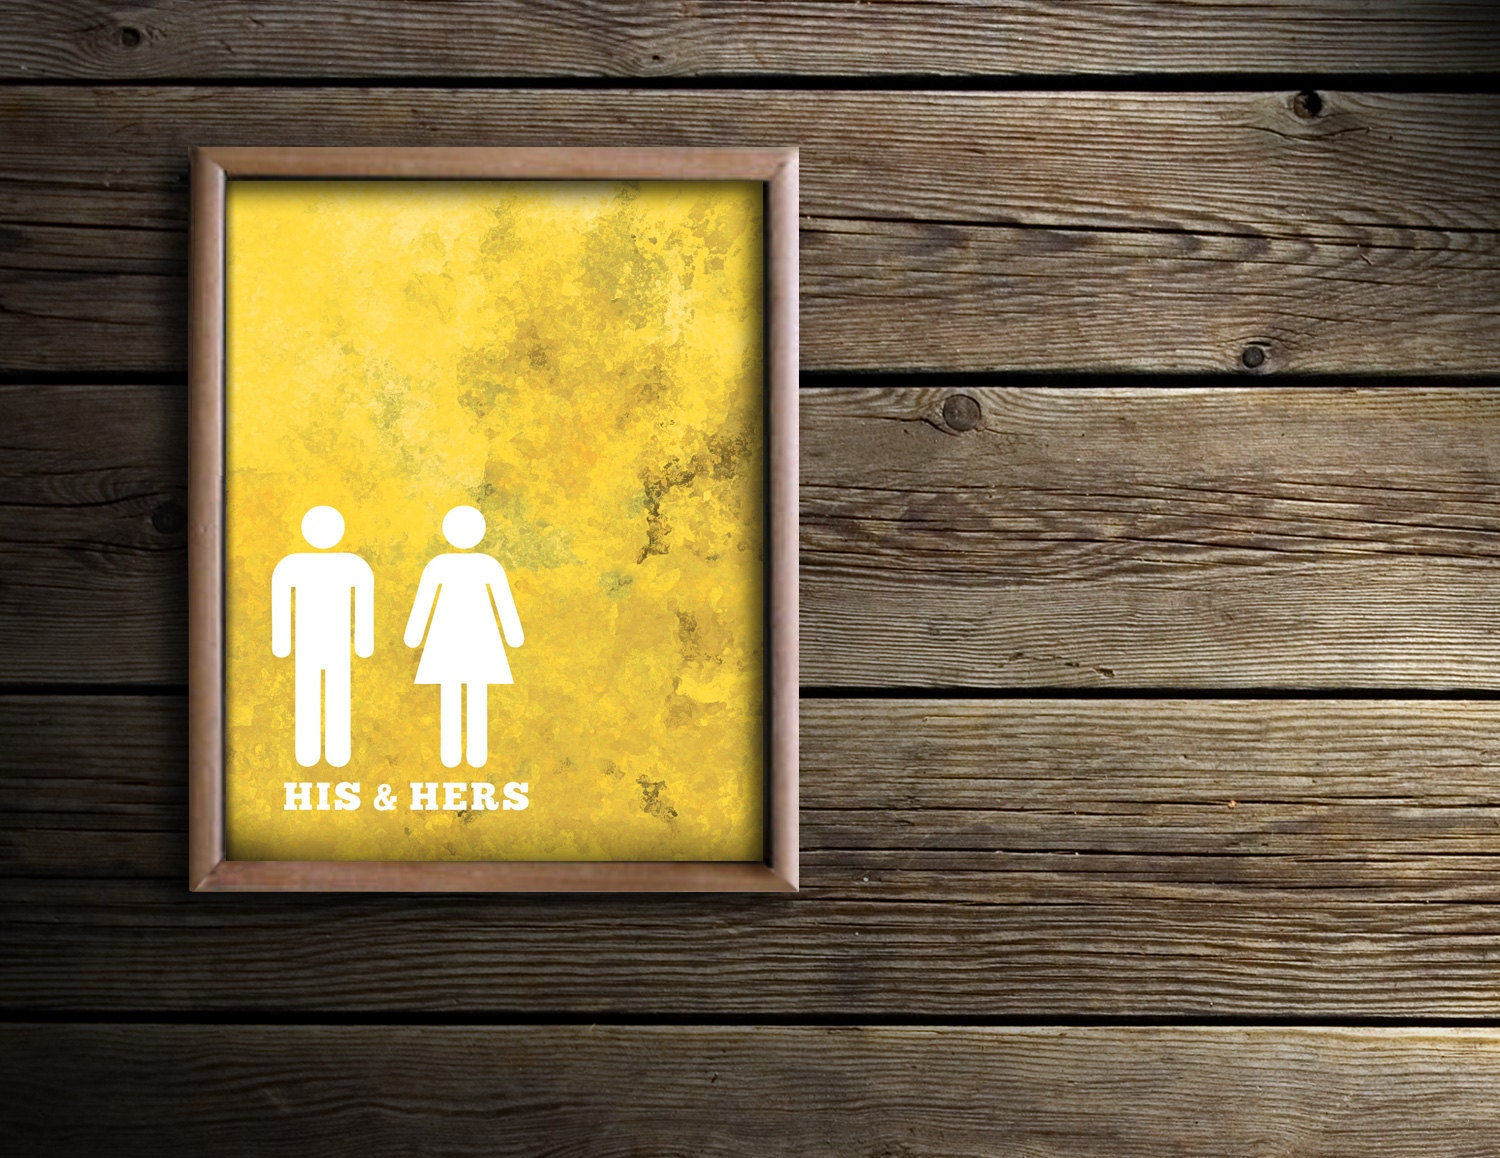 Bathroom Decor Artwork : Bathroom wall art bath prints yellow his